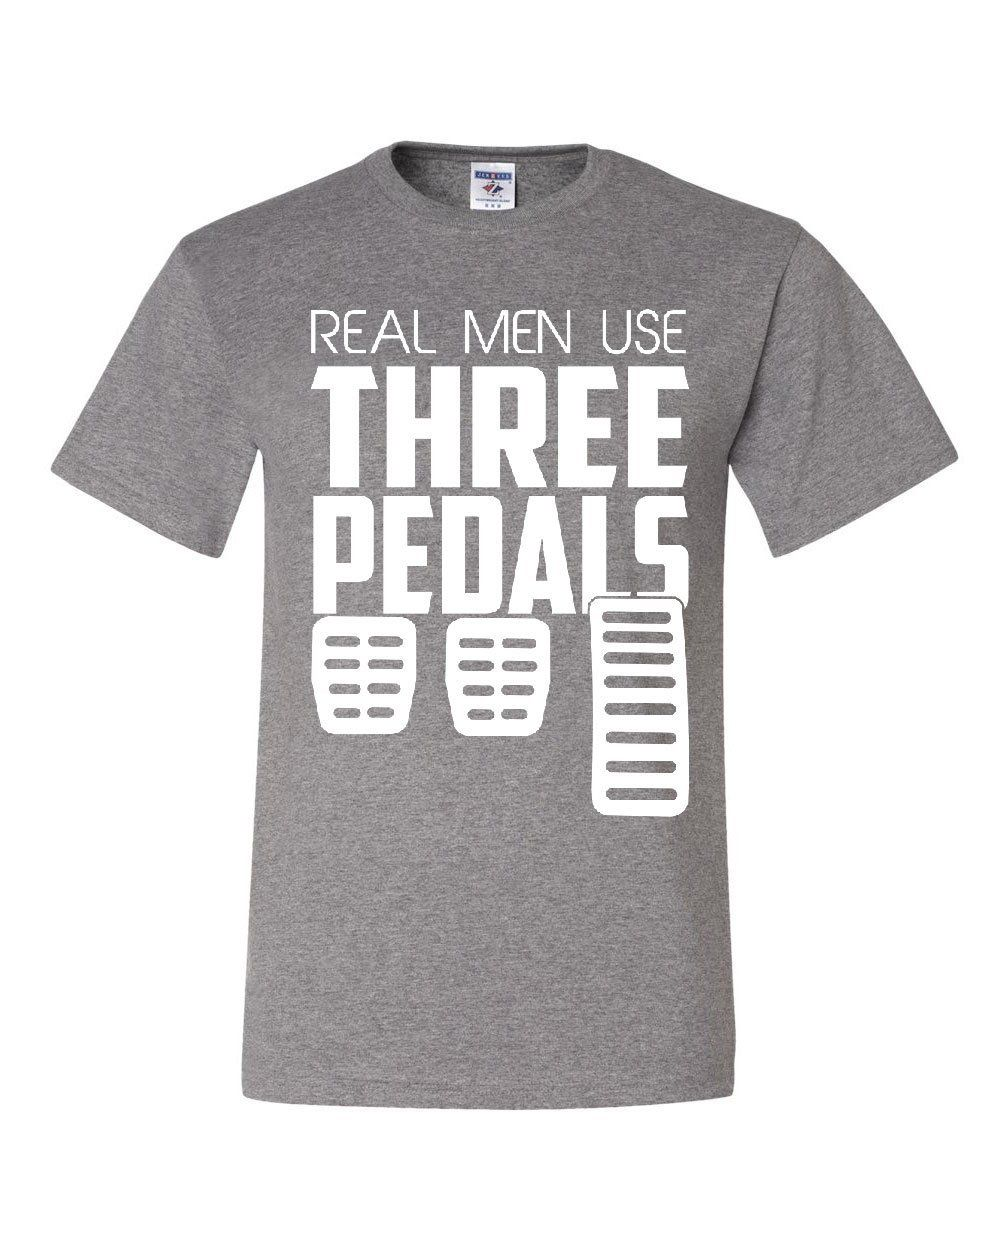 Real Men Use Three Pedals Hoodie Funny Stick Shift Clutch Drive Sweatshirt